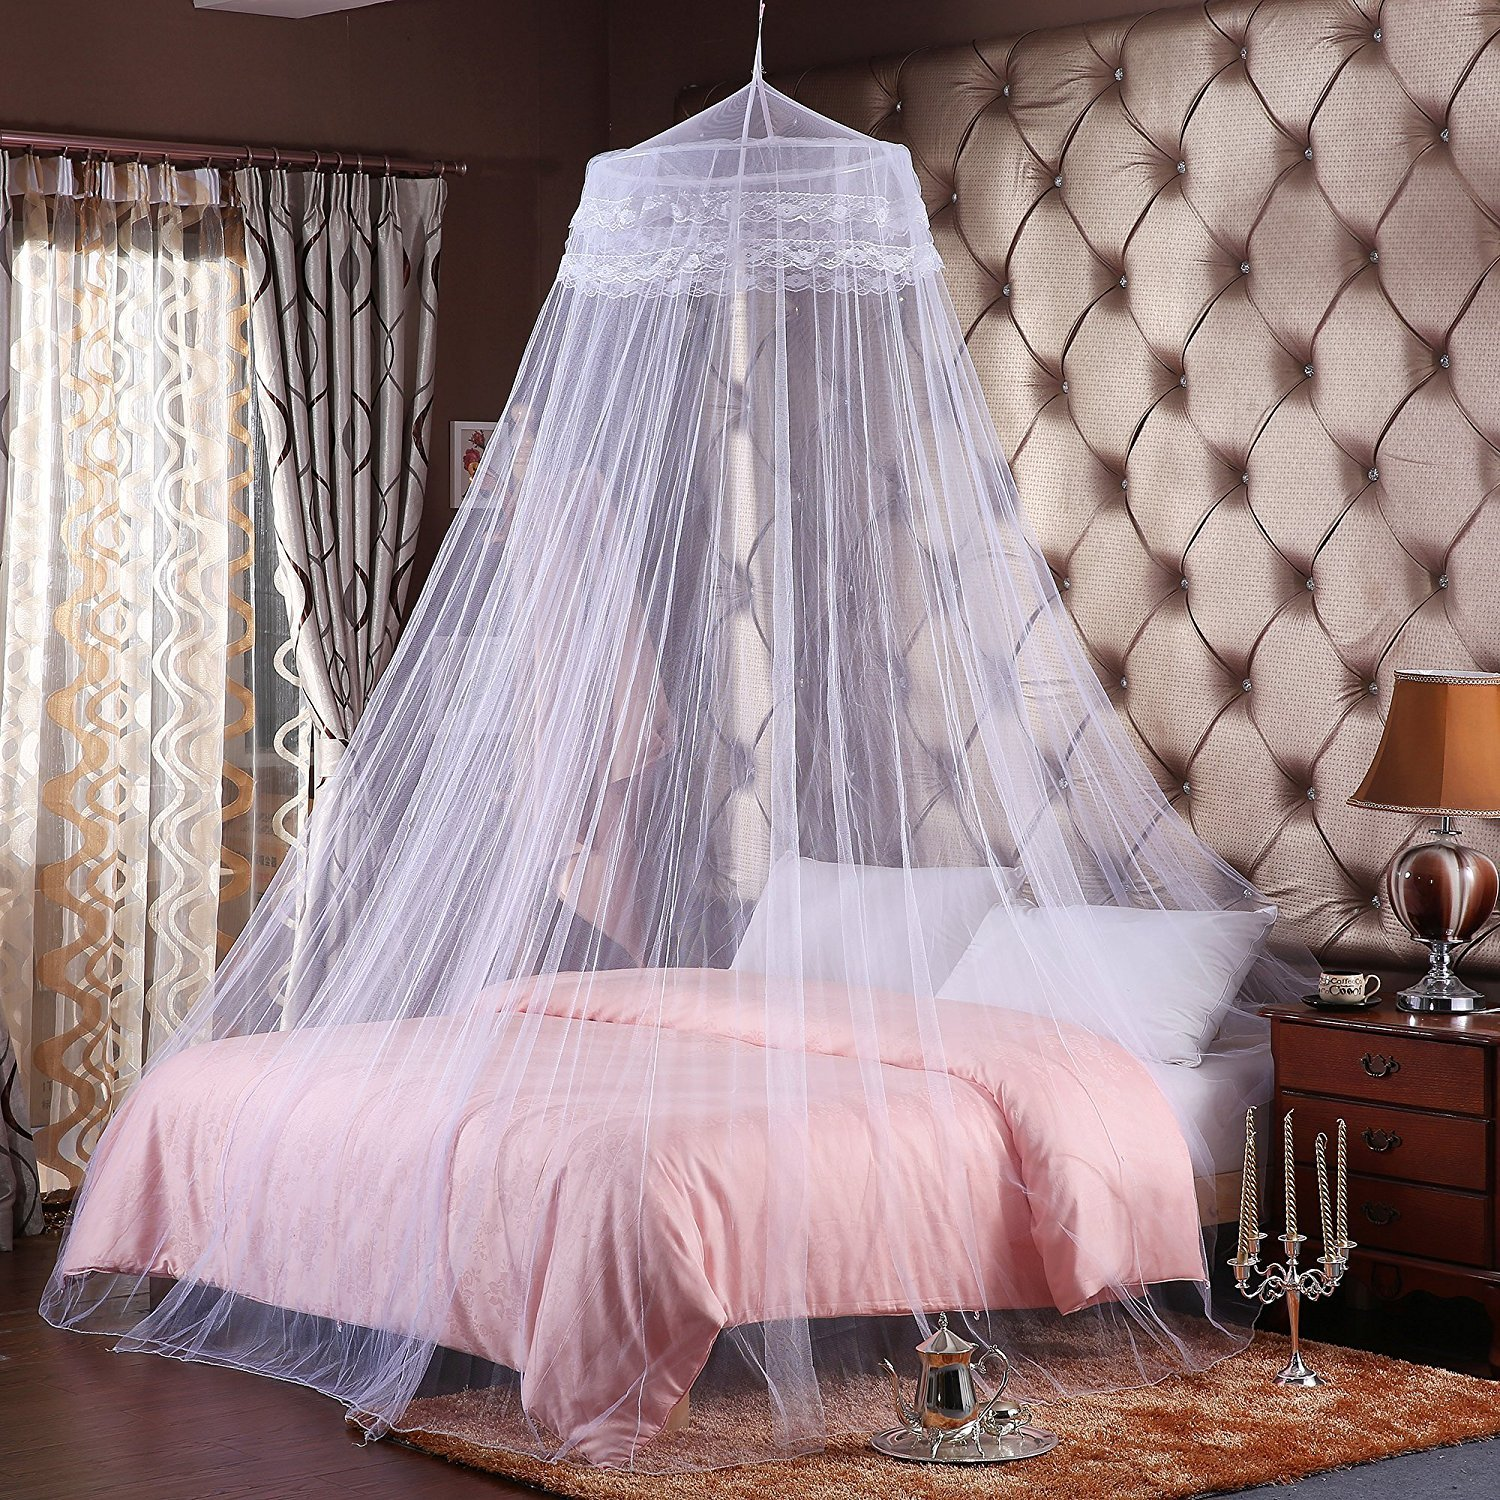 Double Round Post Bed Canopy Mosquito Net Twin Full Queen Size Netting Bedding BLACK Lighting-Time